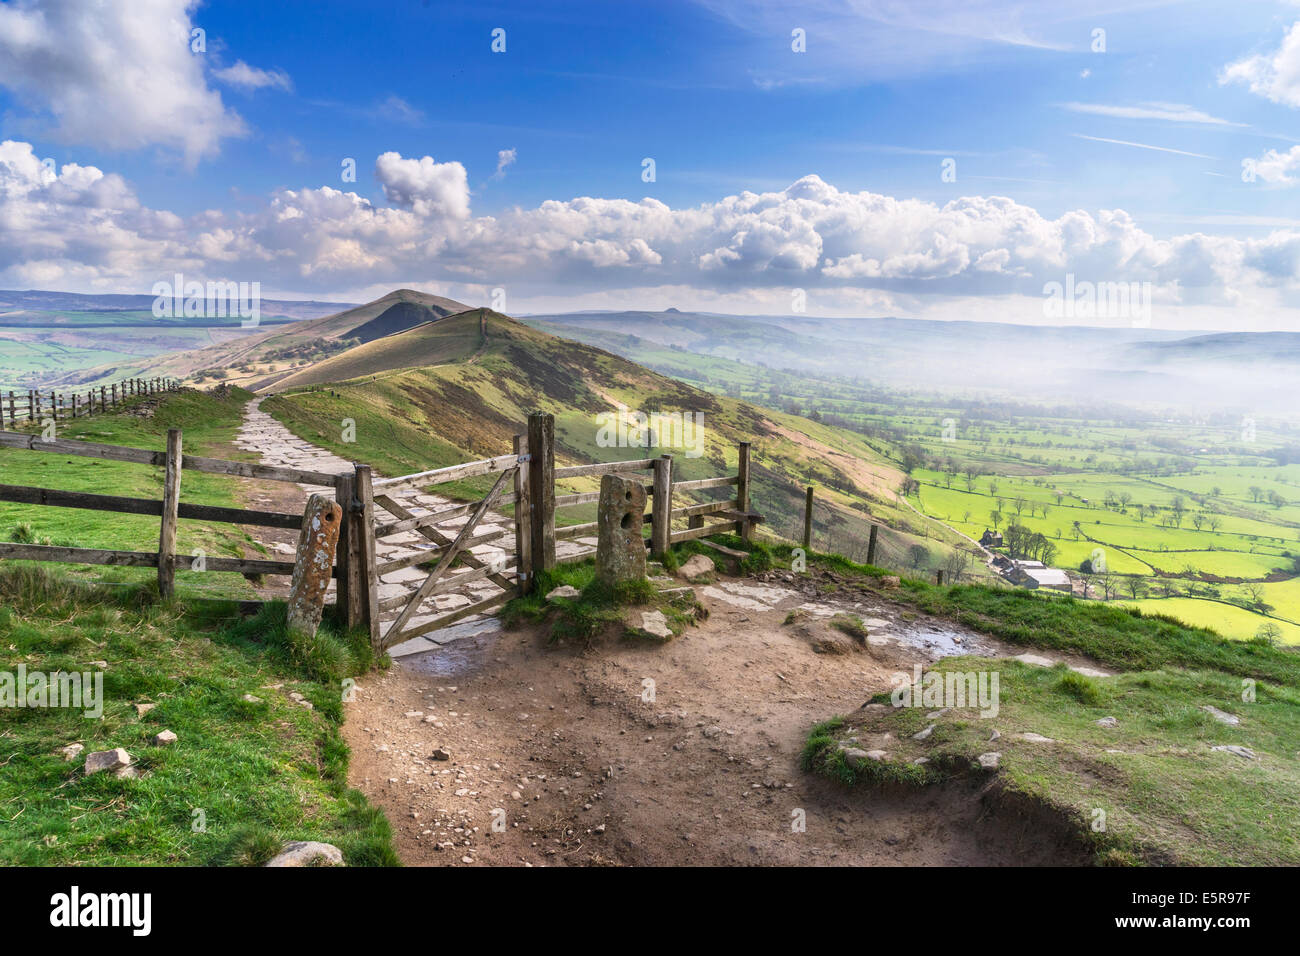 Mam Tor in the English Peak District - Stock Image